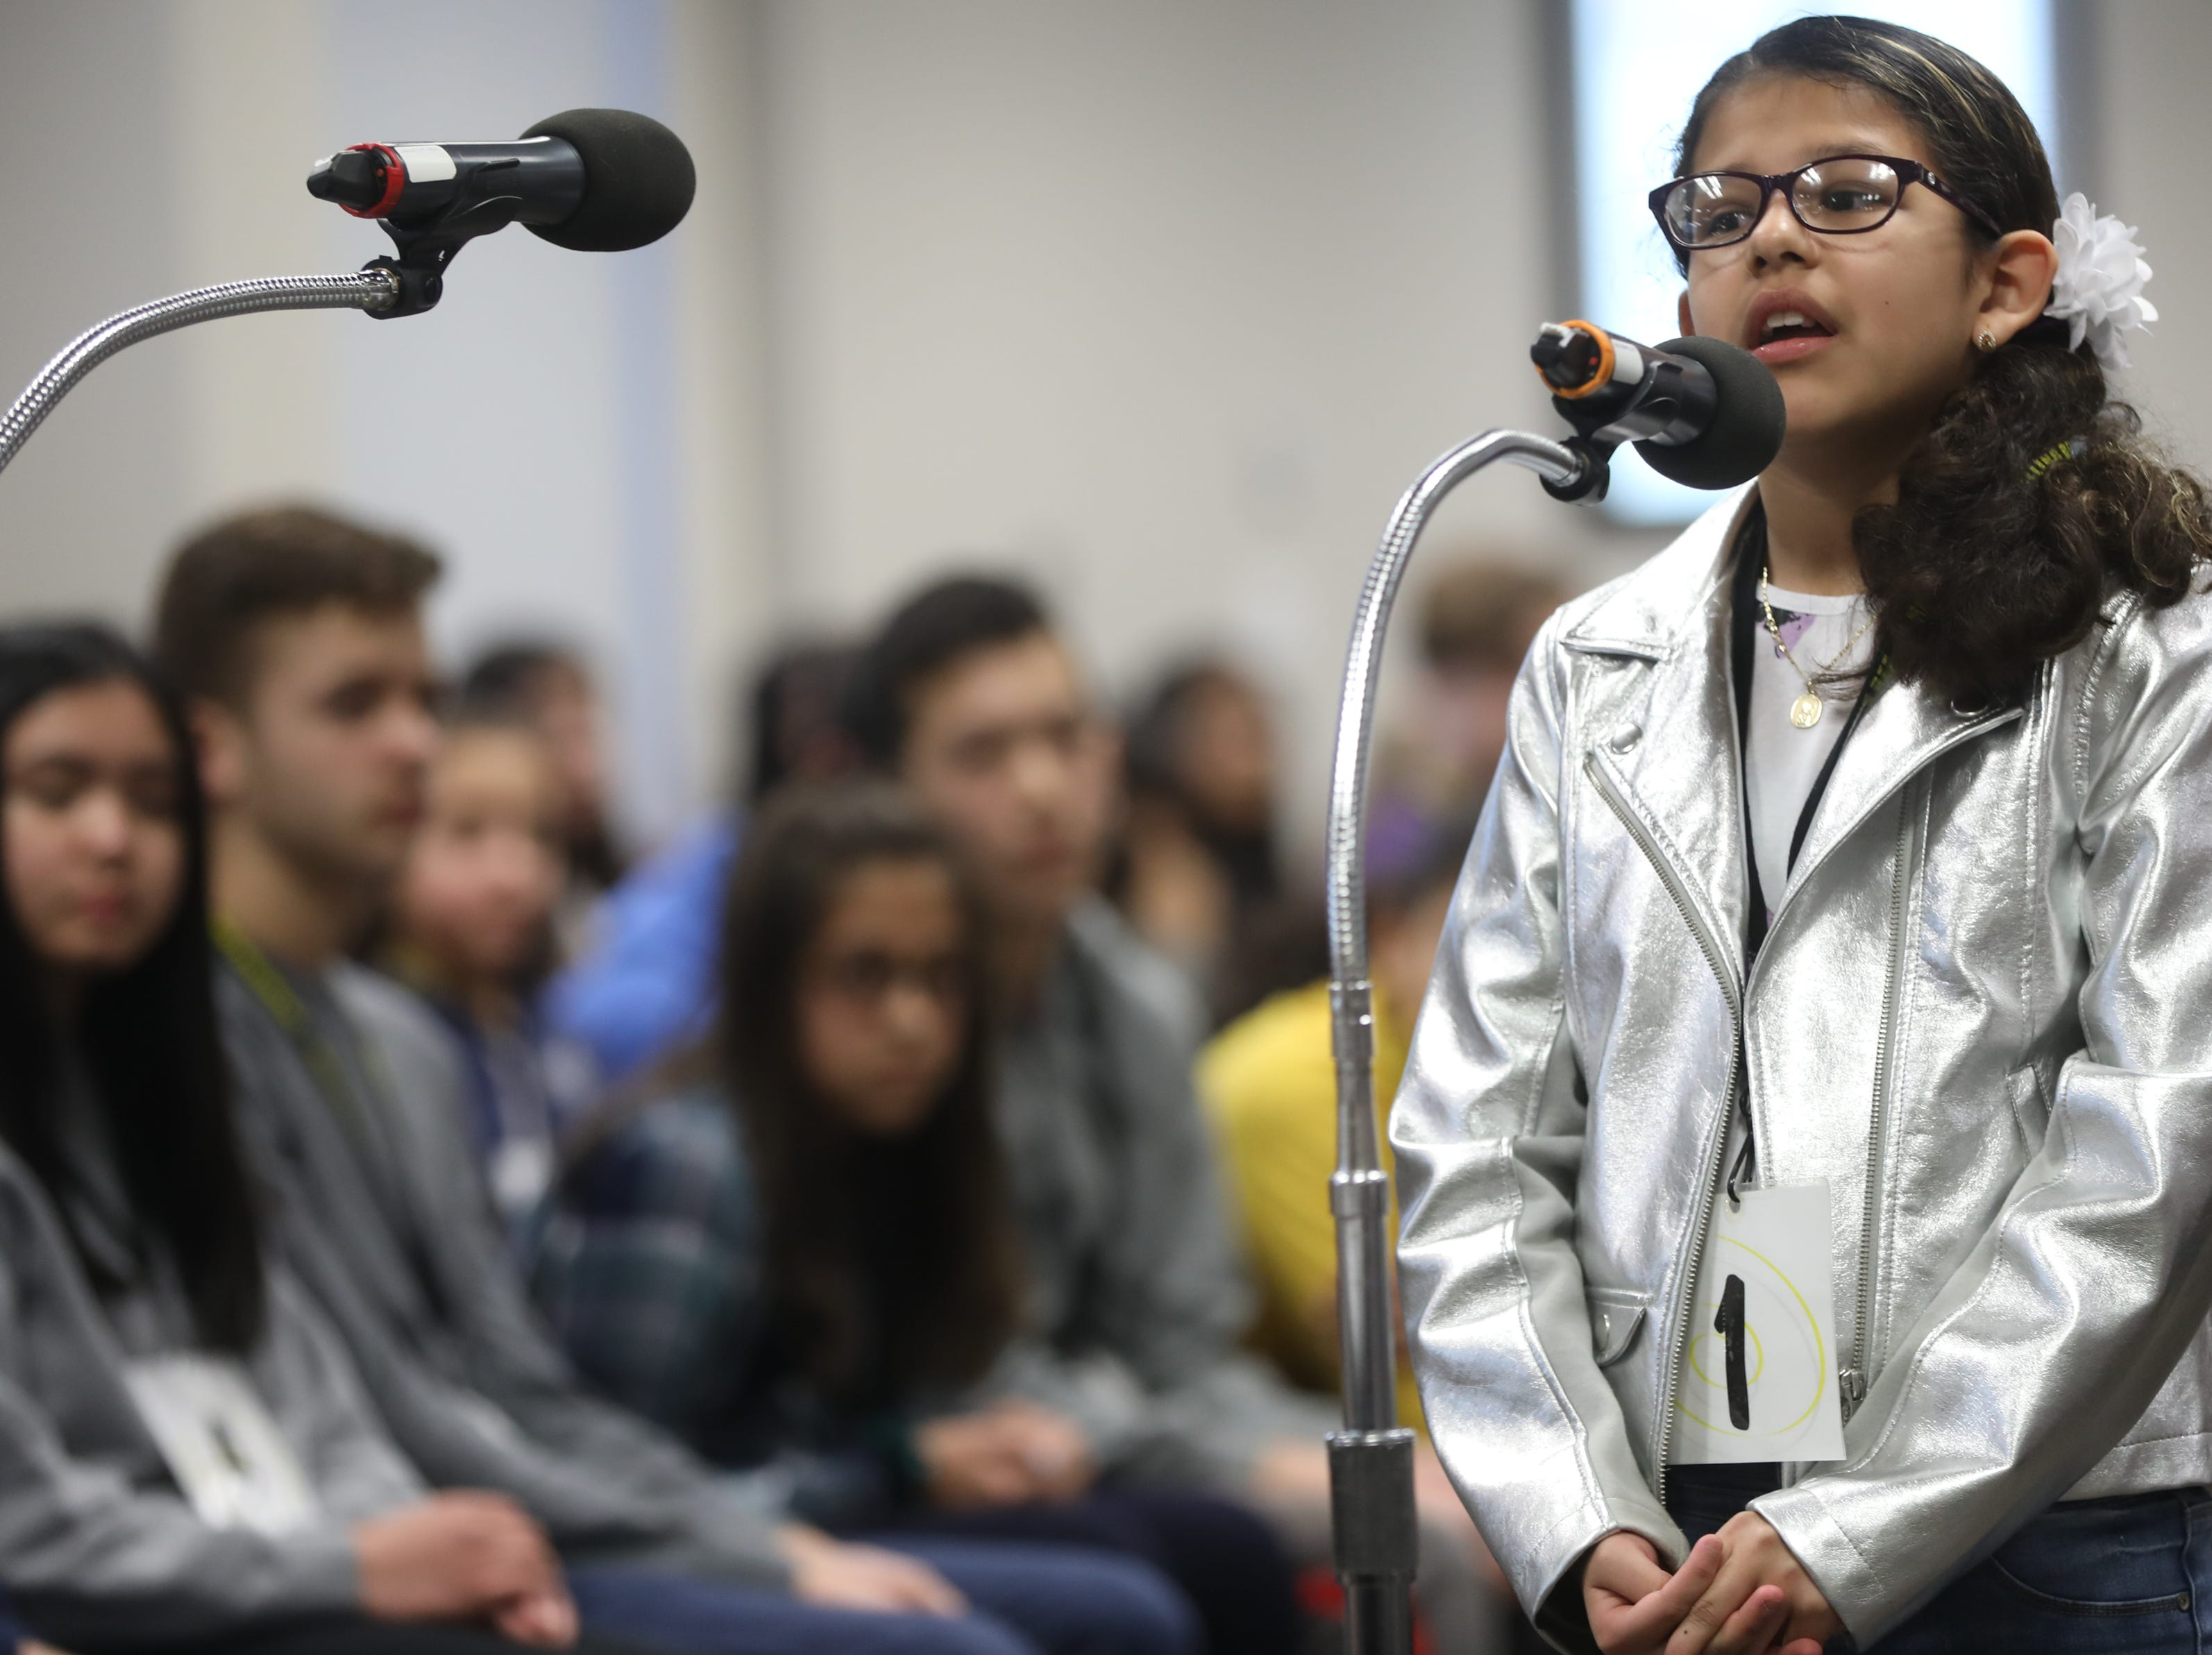 Melanie Flores, of Garfield, competes in the first round of the 2019 North Jersey Spelling Bee, in Paramus. Thursday, March 14, 2019